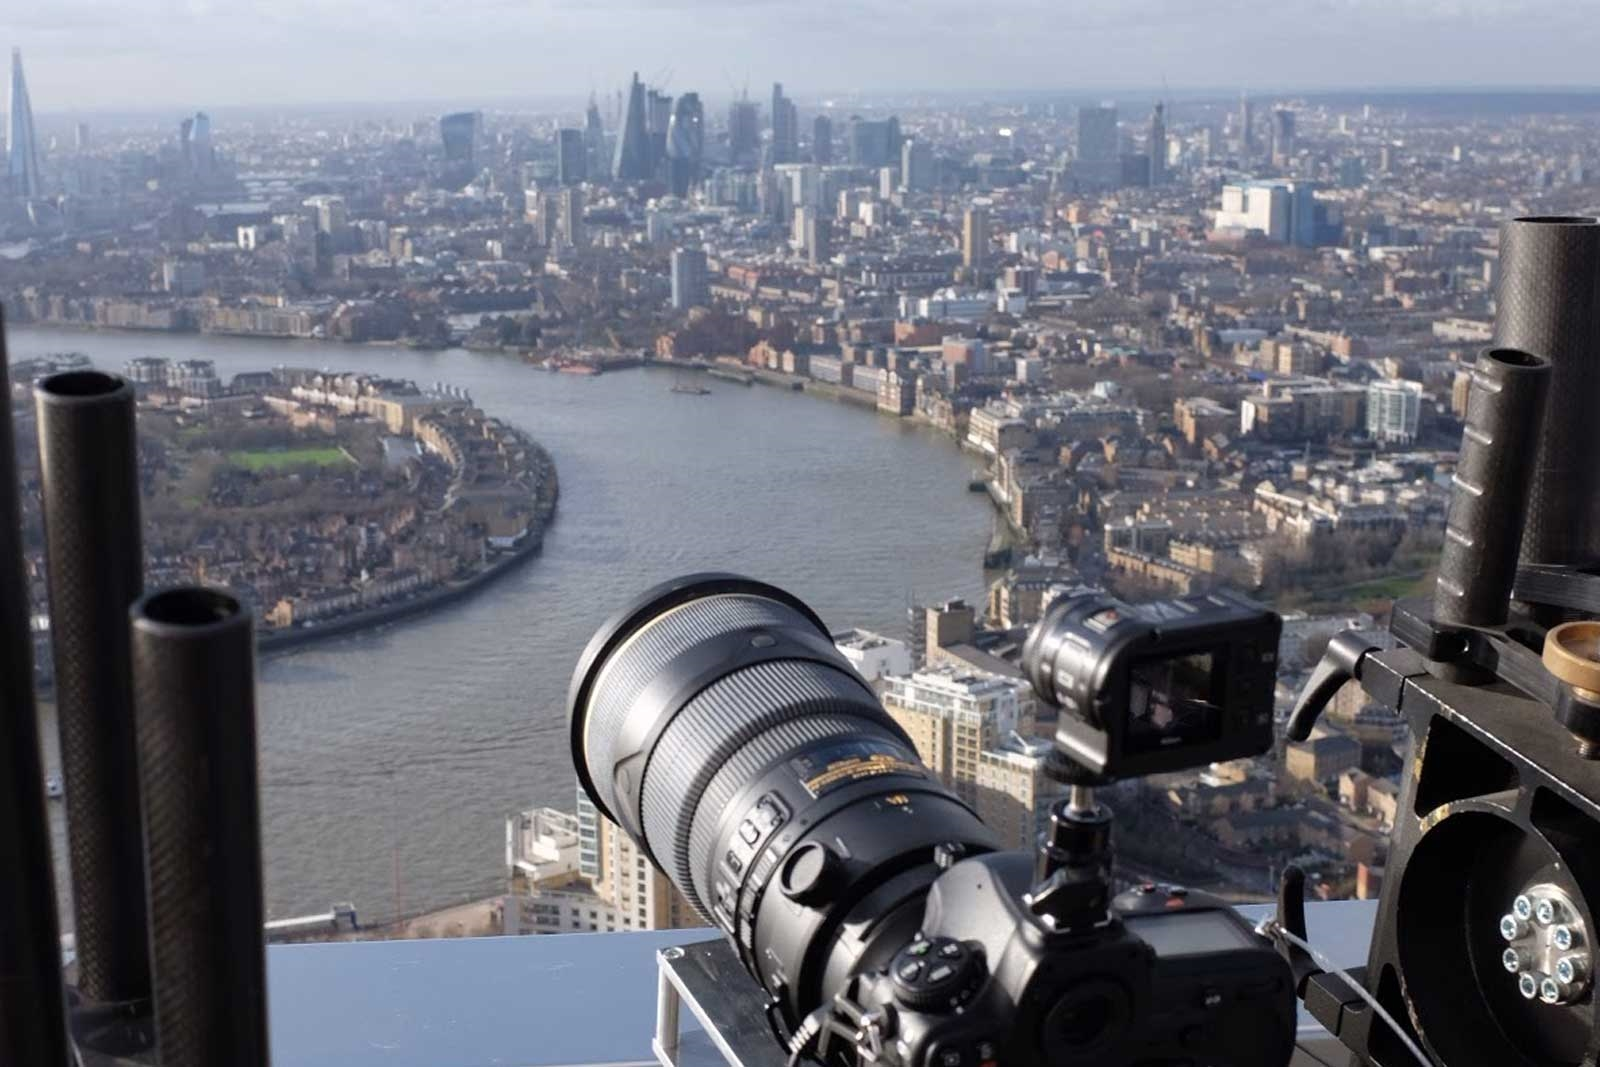 Gigapixel timelapse captures a day in the life of London   DeviceDaily.com